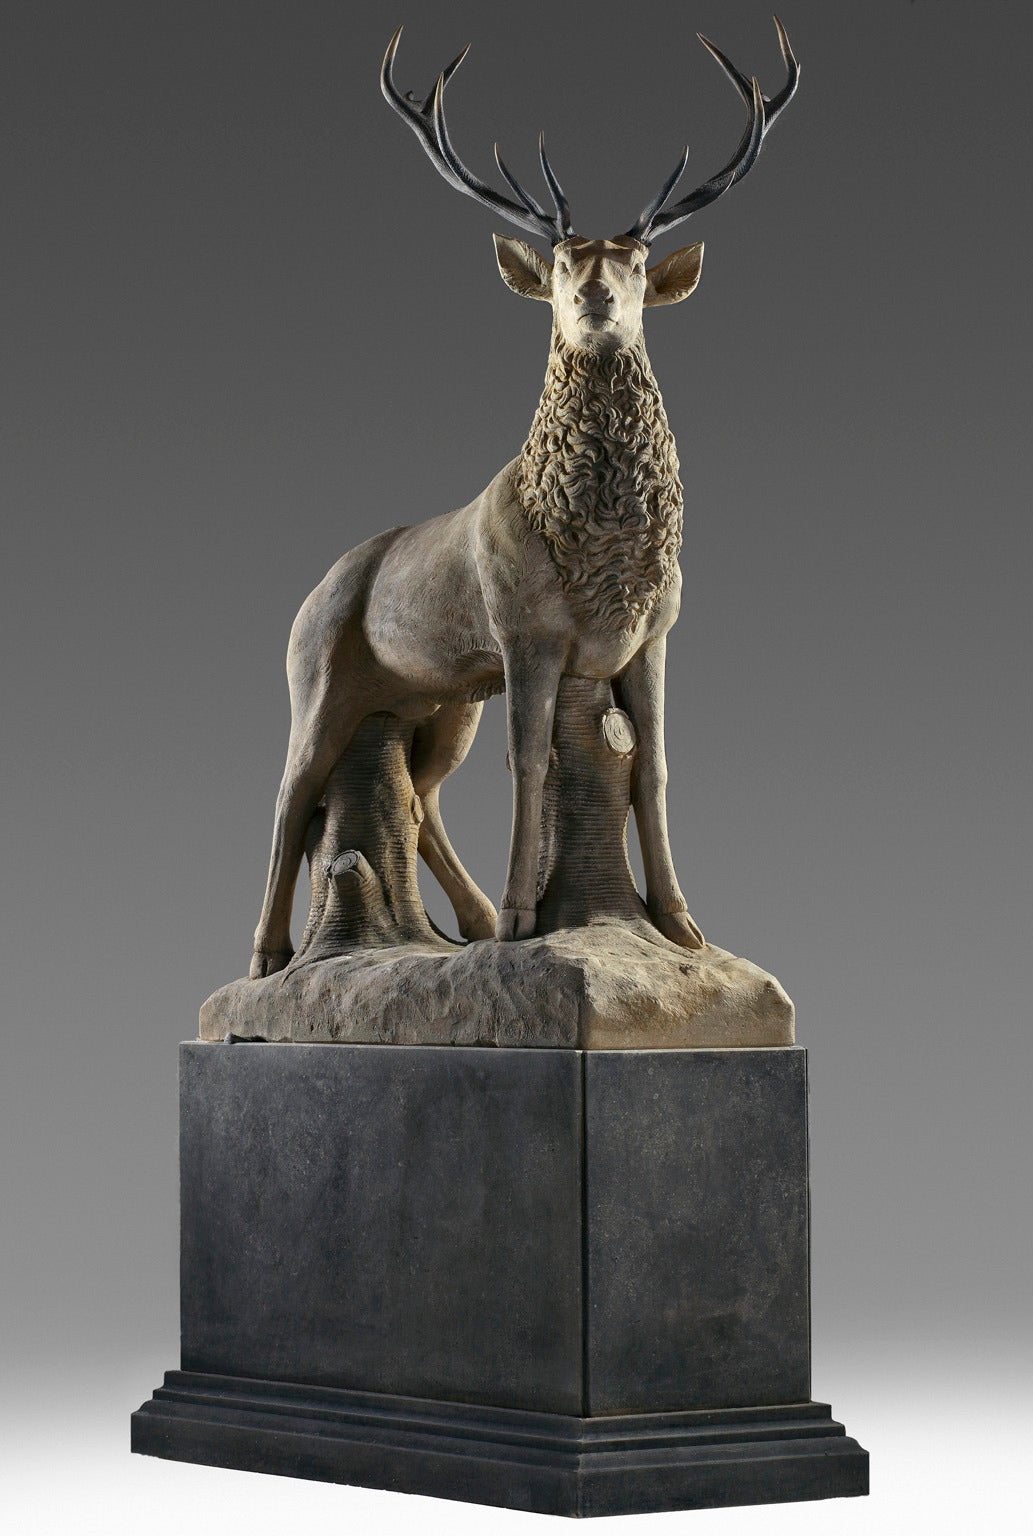 Naturalistically modelled standing, above a rectangular section limestone plinth, 325 cm. high overall, the base 100 cm. high.